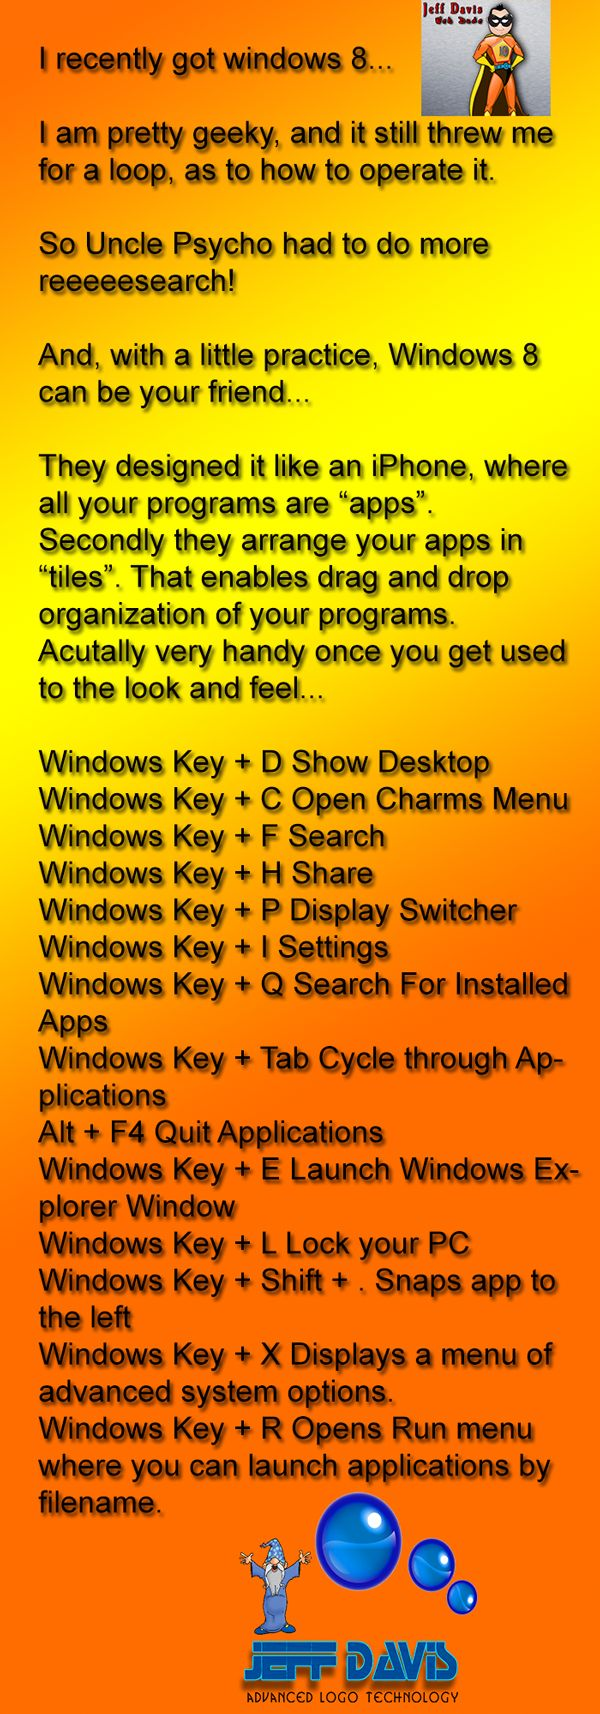 In case I get a new laptop with windows 8, great tips: good for both my laptop and desktop